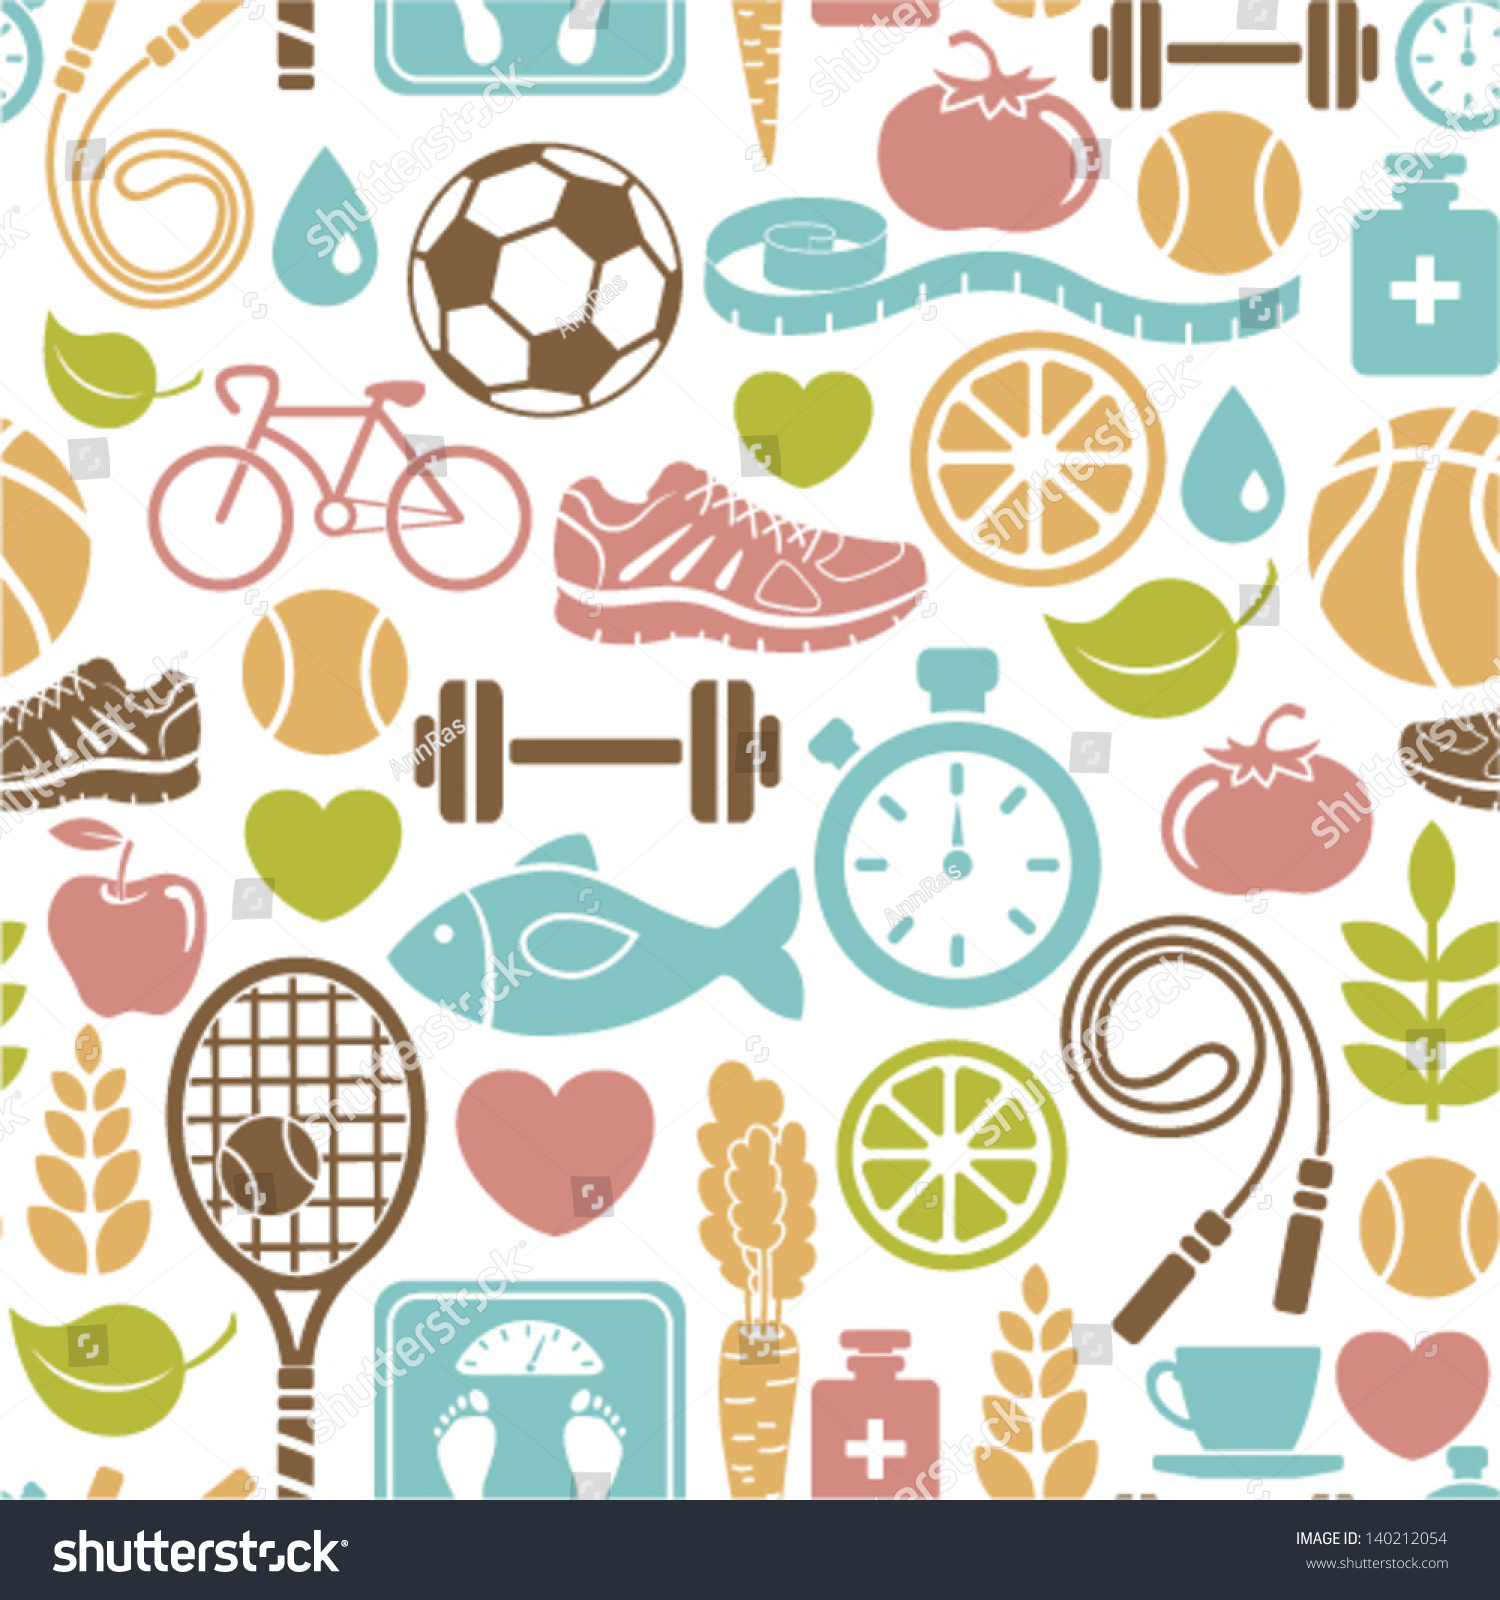 clipart backgrounds